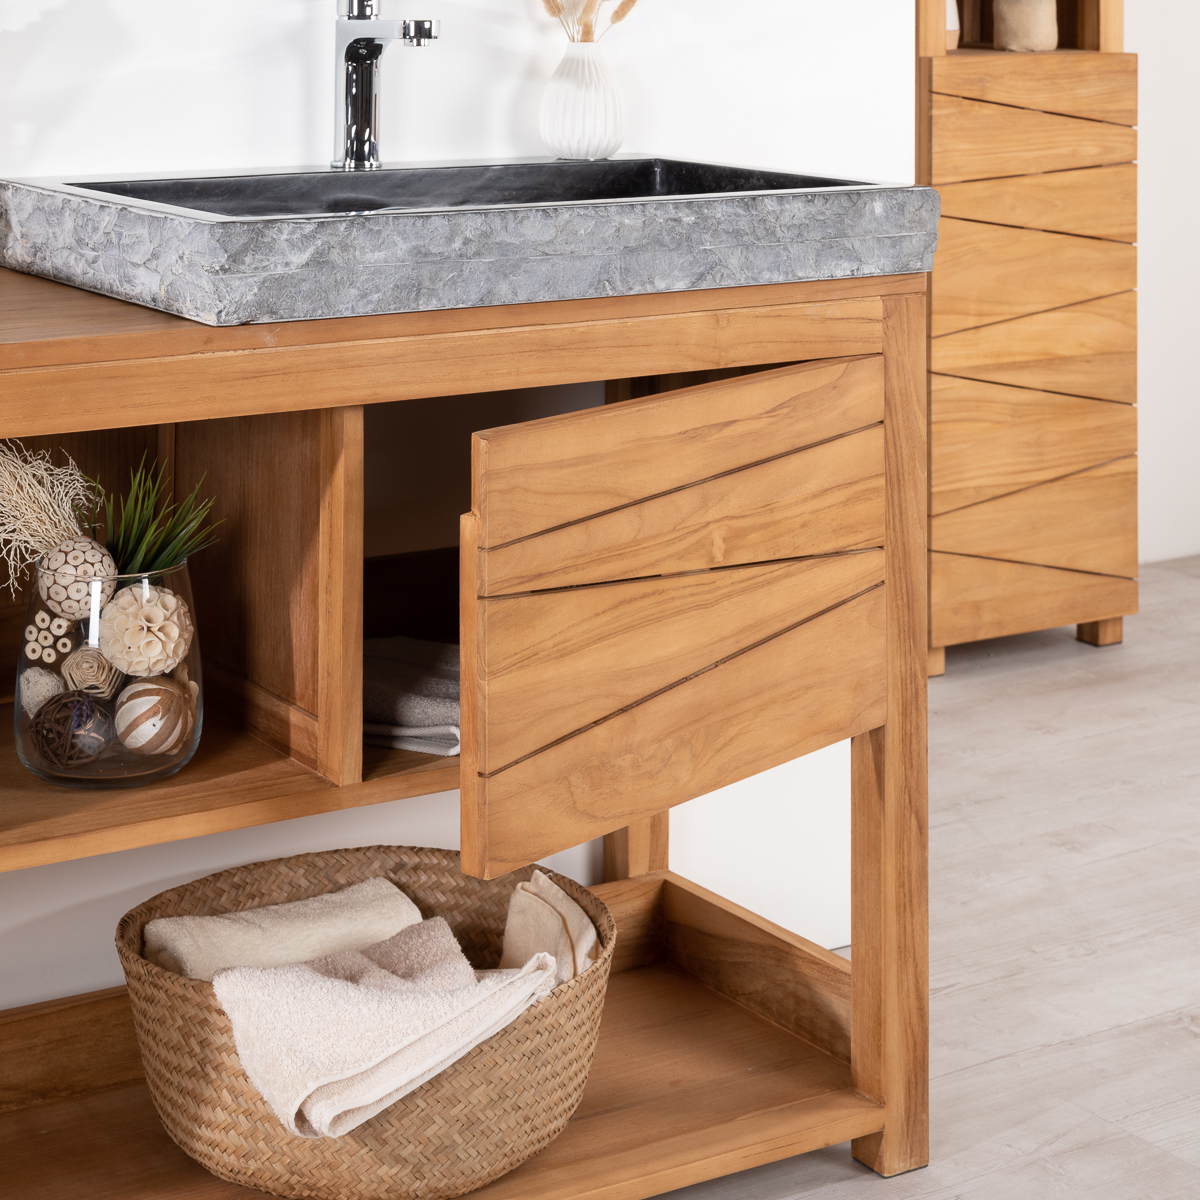 meuble sous vasque double vasque en bois teck massif 2 vasques en marbre cosy naturel. Black Bedroom Furniture Sets. Home Design Ideas